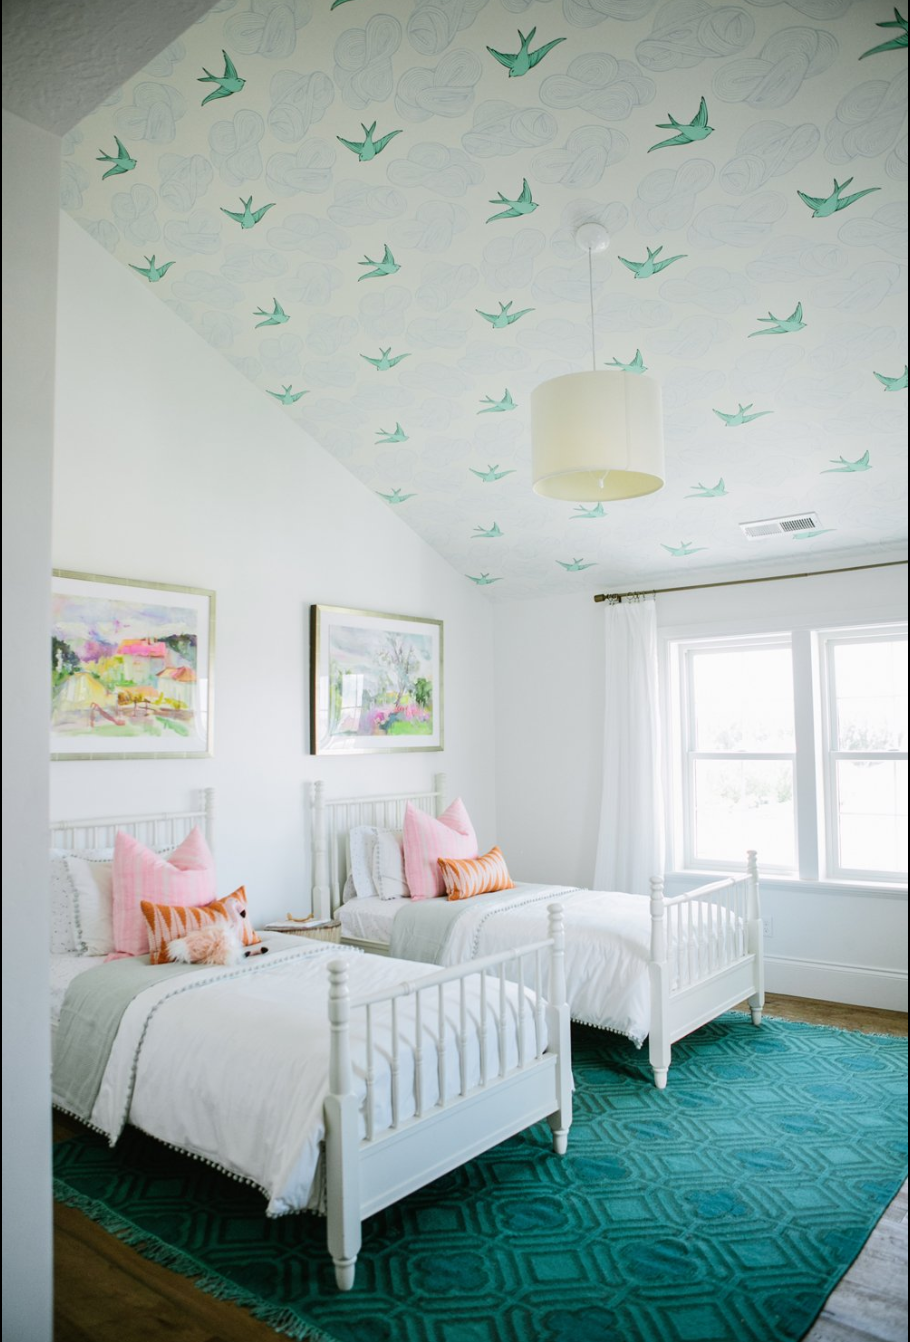 Birds of a feather by House of Jade Interiors